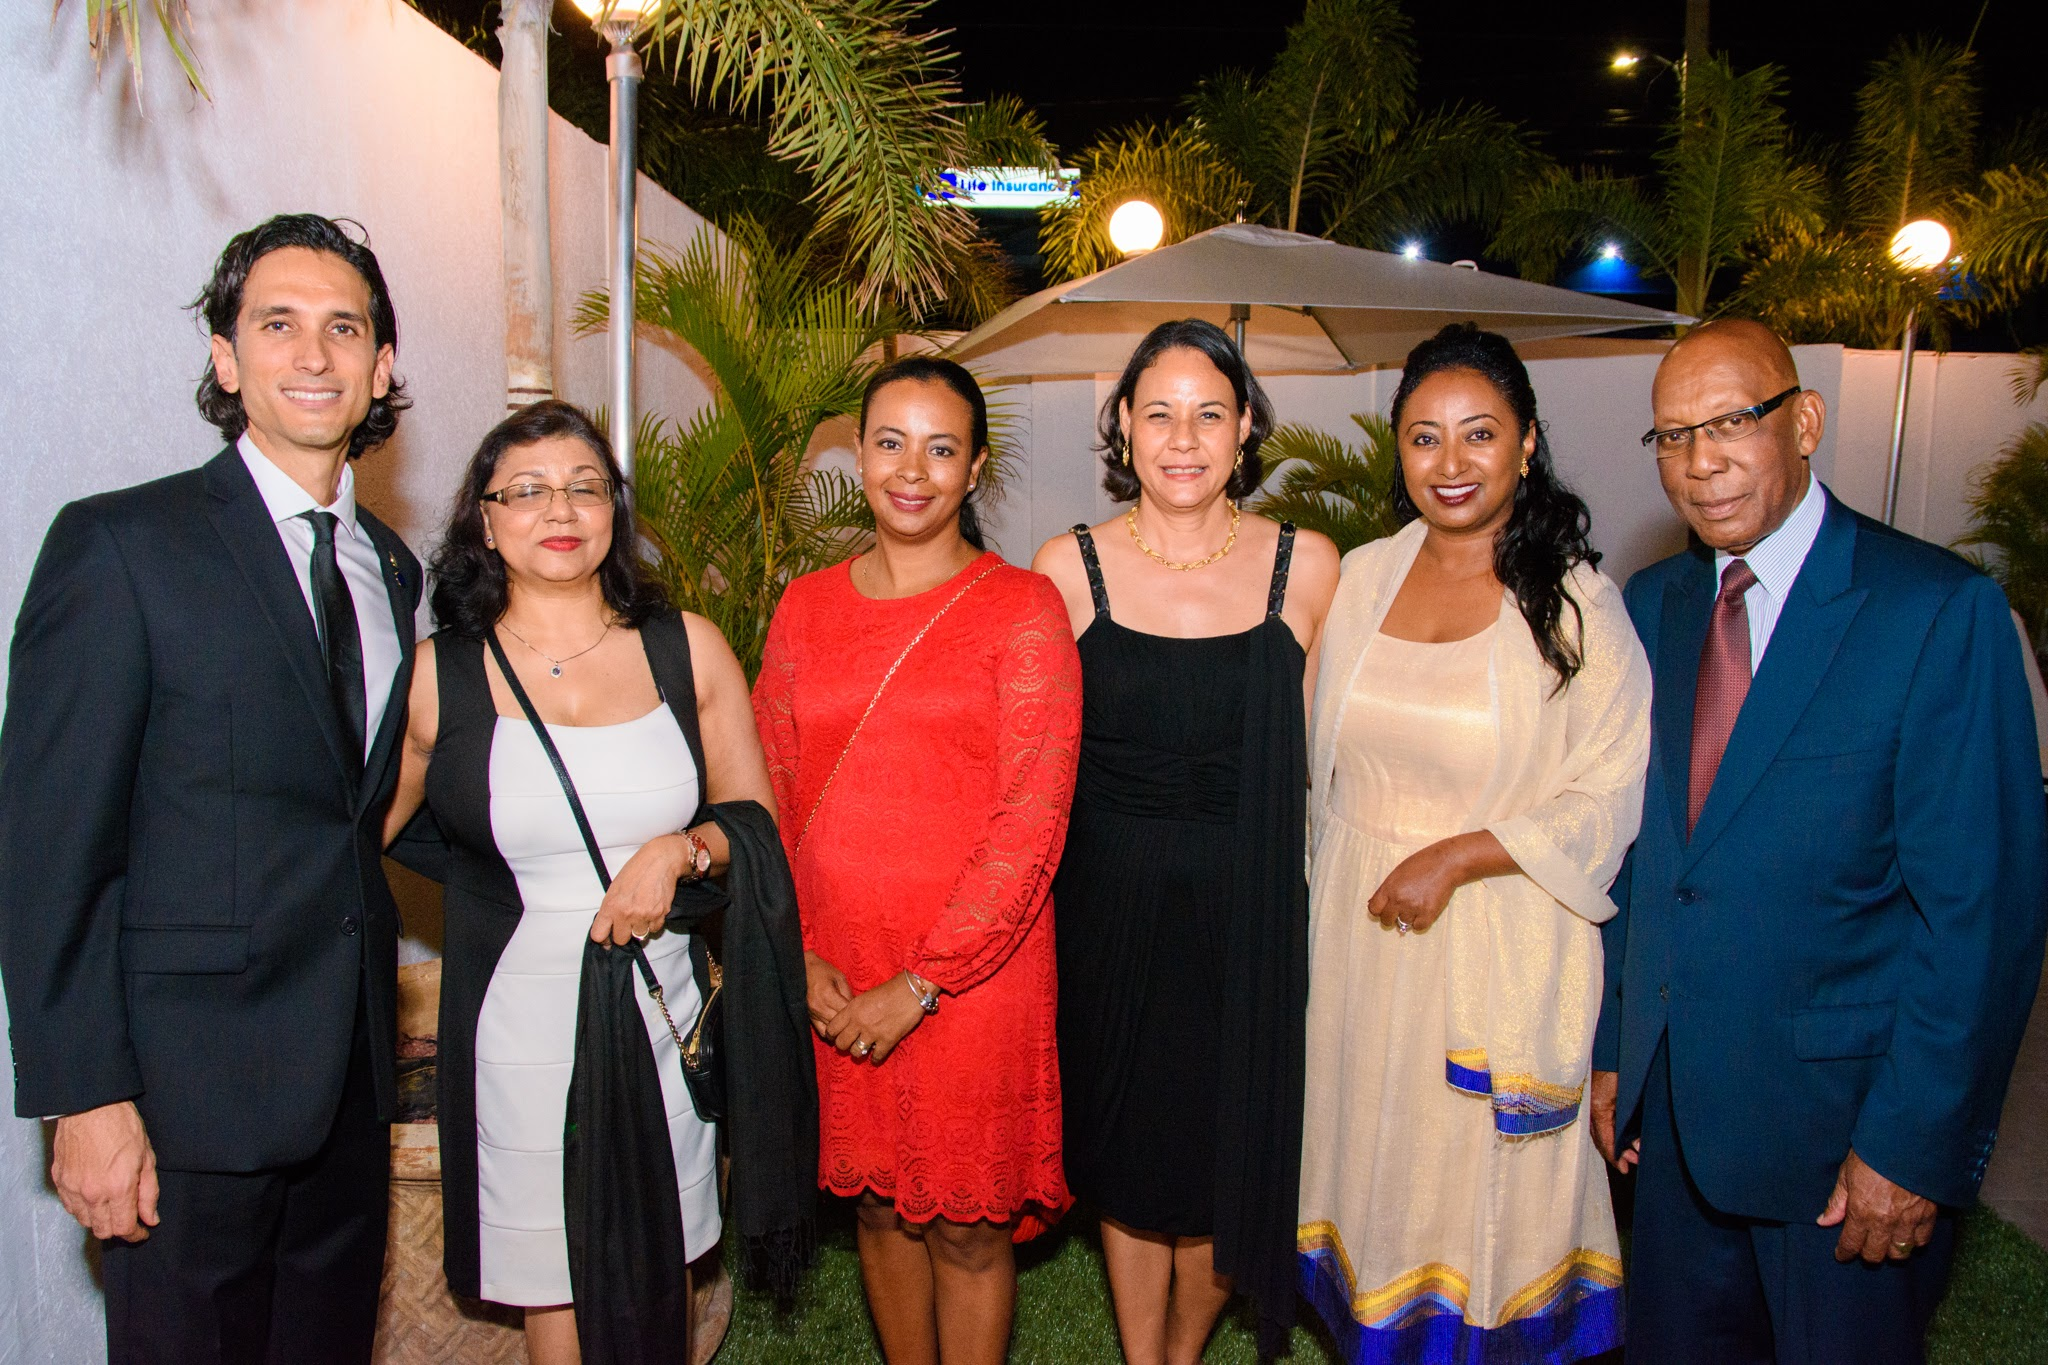 The Consular Corps of Jamaica AAC_2903